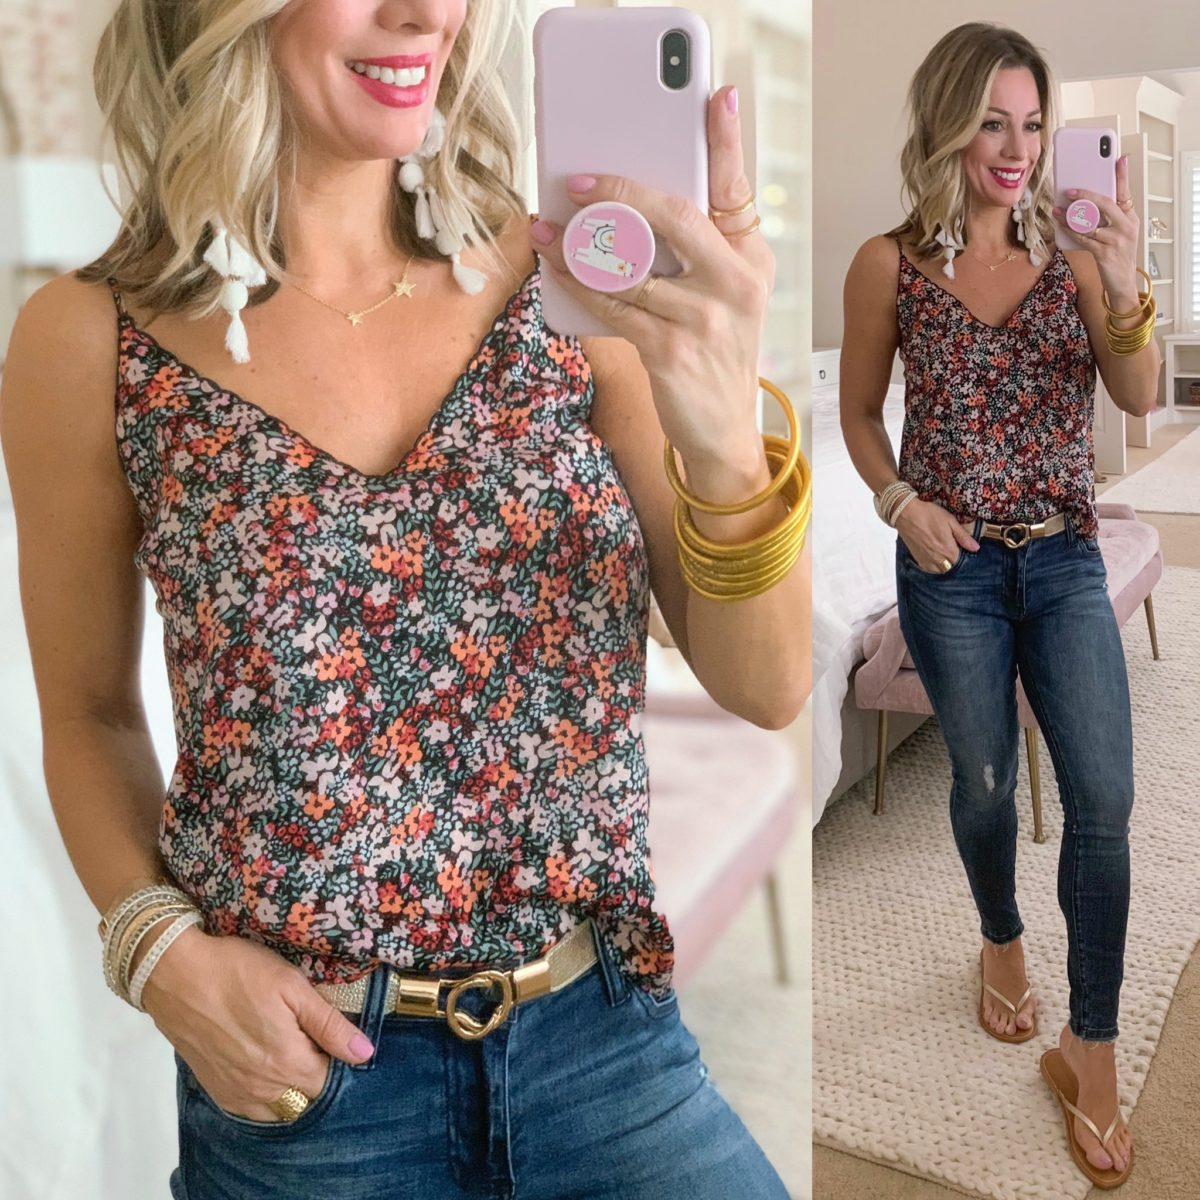 Floral Print Cami, Gold Bet, Kut from KLOTH jeans, Gold Flip Flops